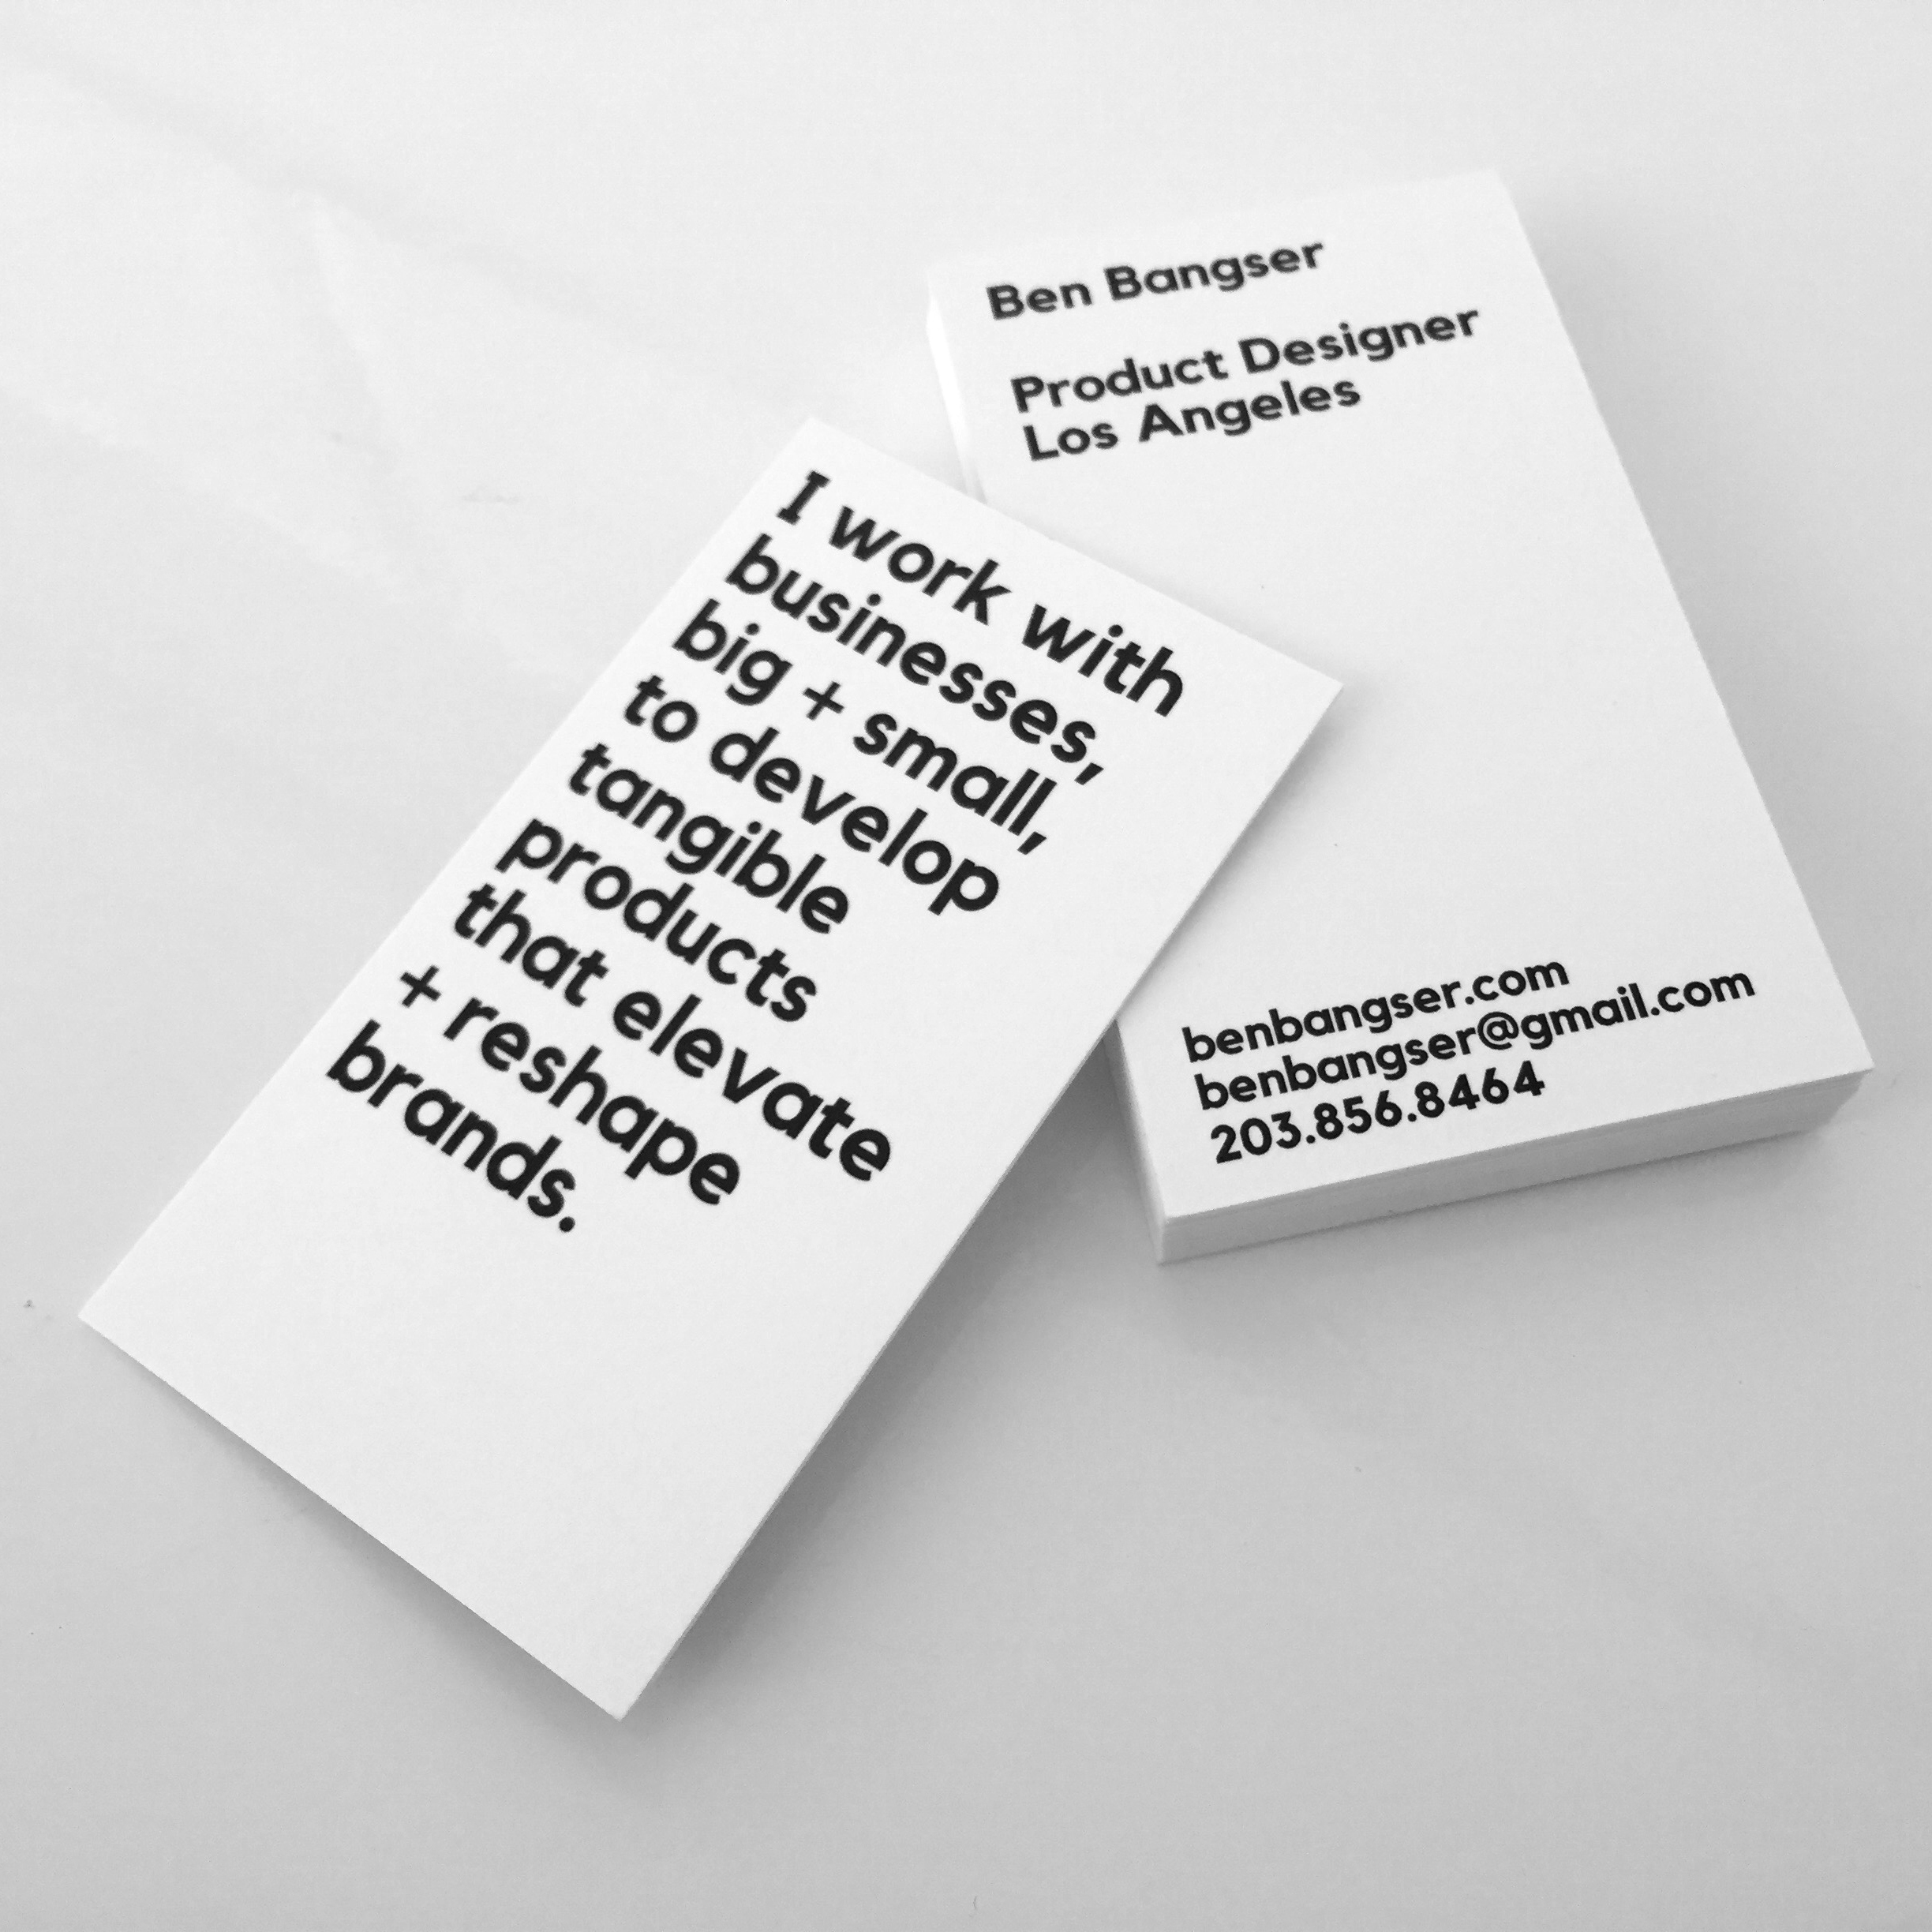 Ben Bangser Business Card Photo_SQUARE.jpg